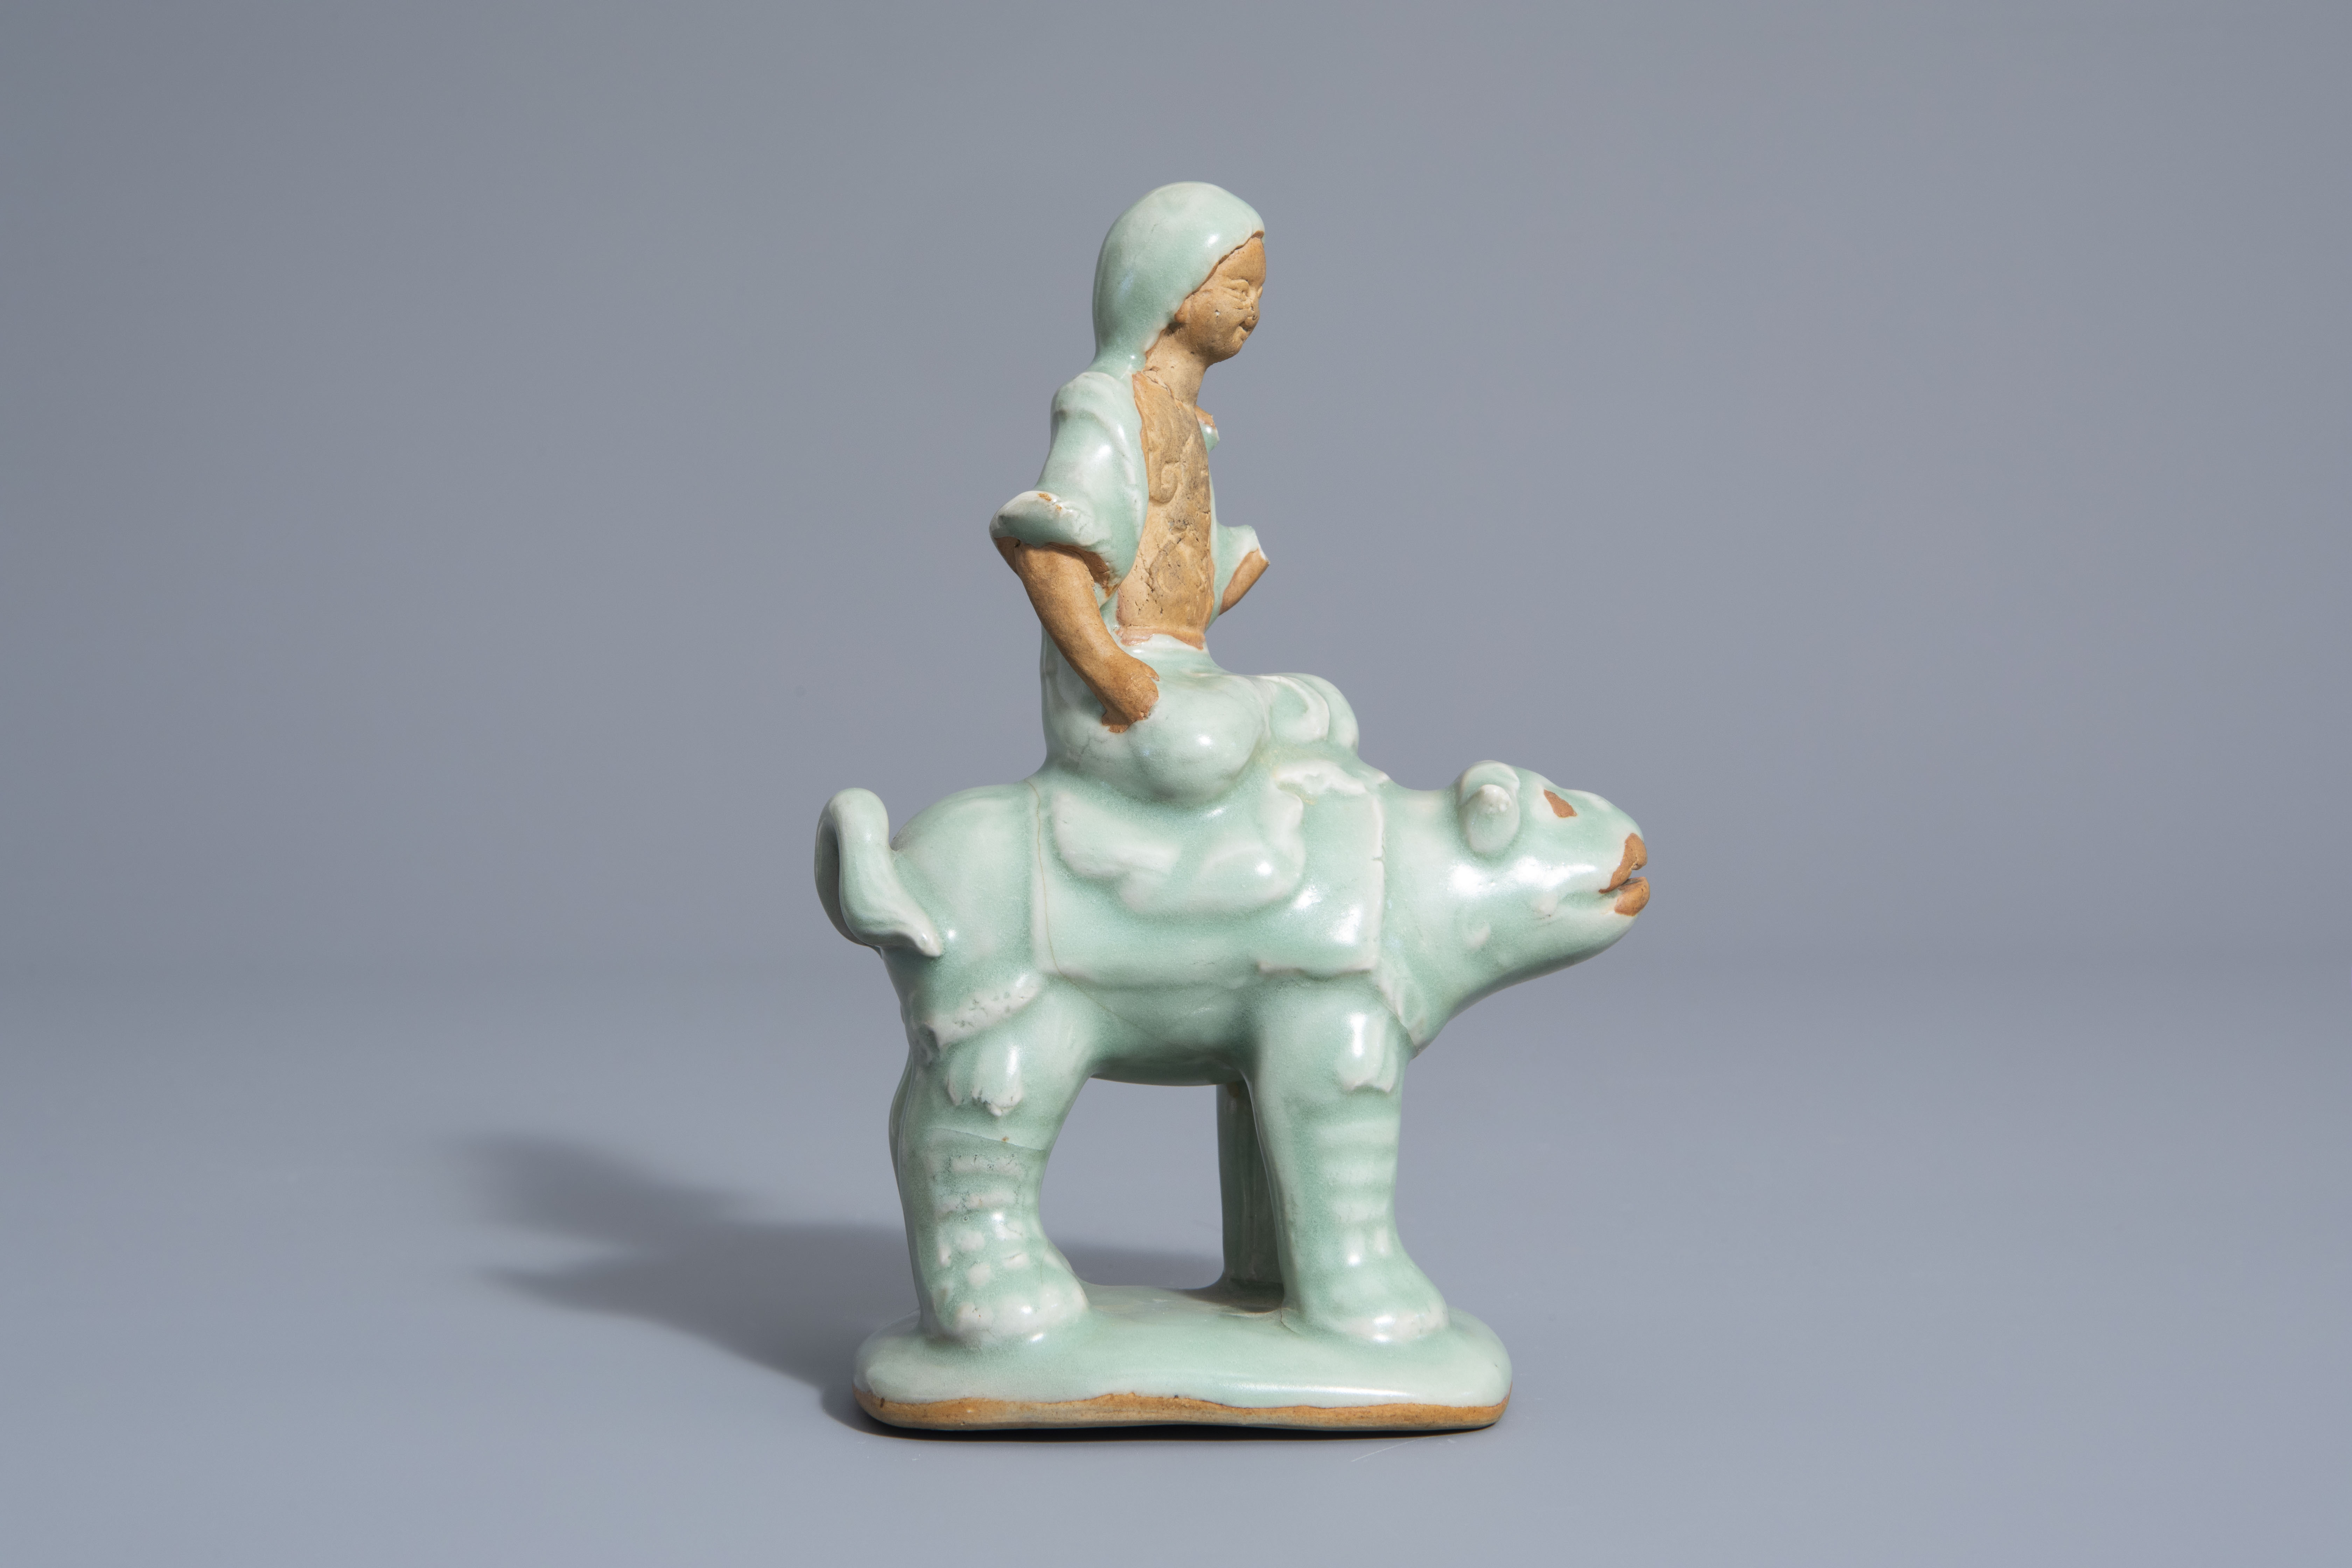 A Chinese celadon glazed group, 19th/20th C. - Image 2 of 7